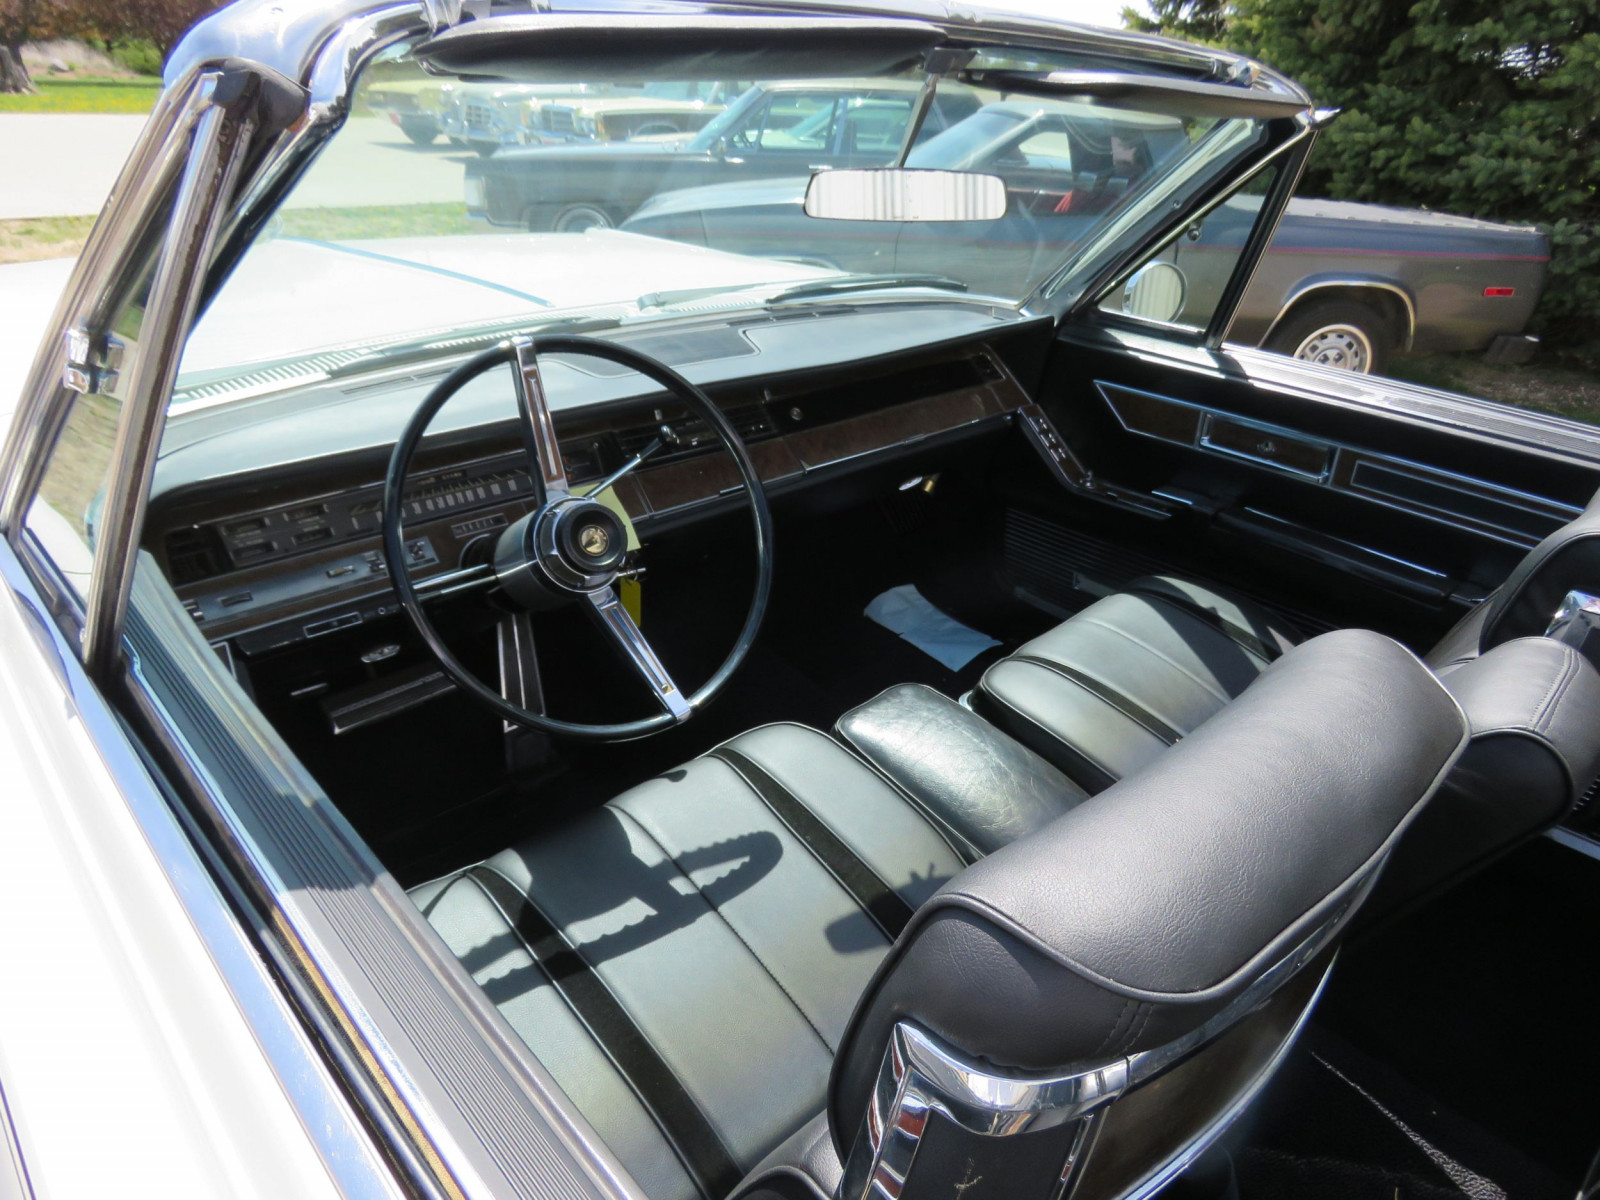 1967 Chrysler Imperial Convertible - Image 11